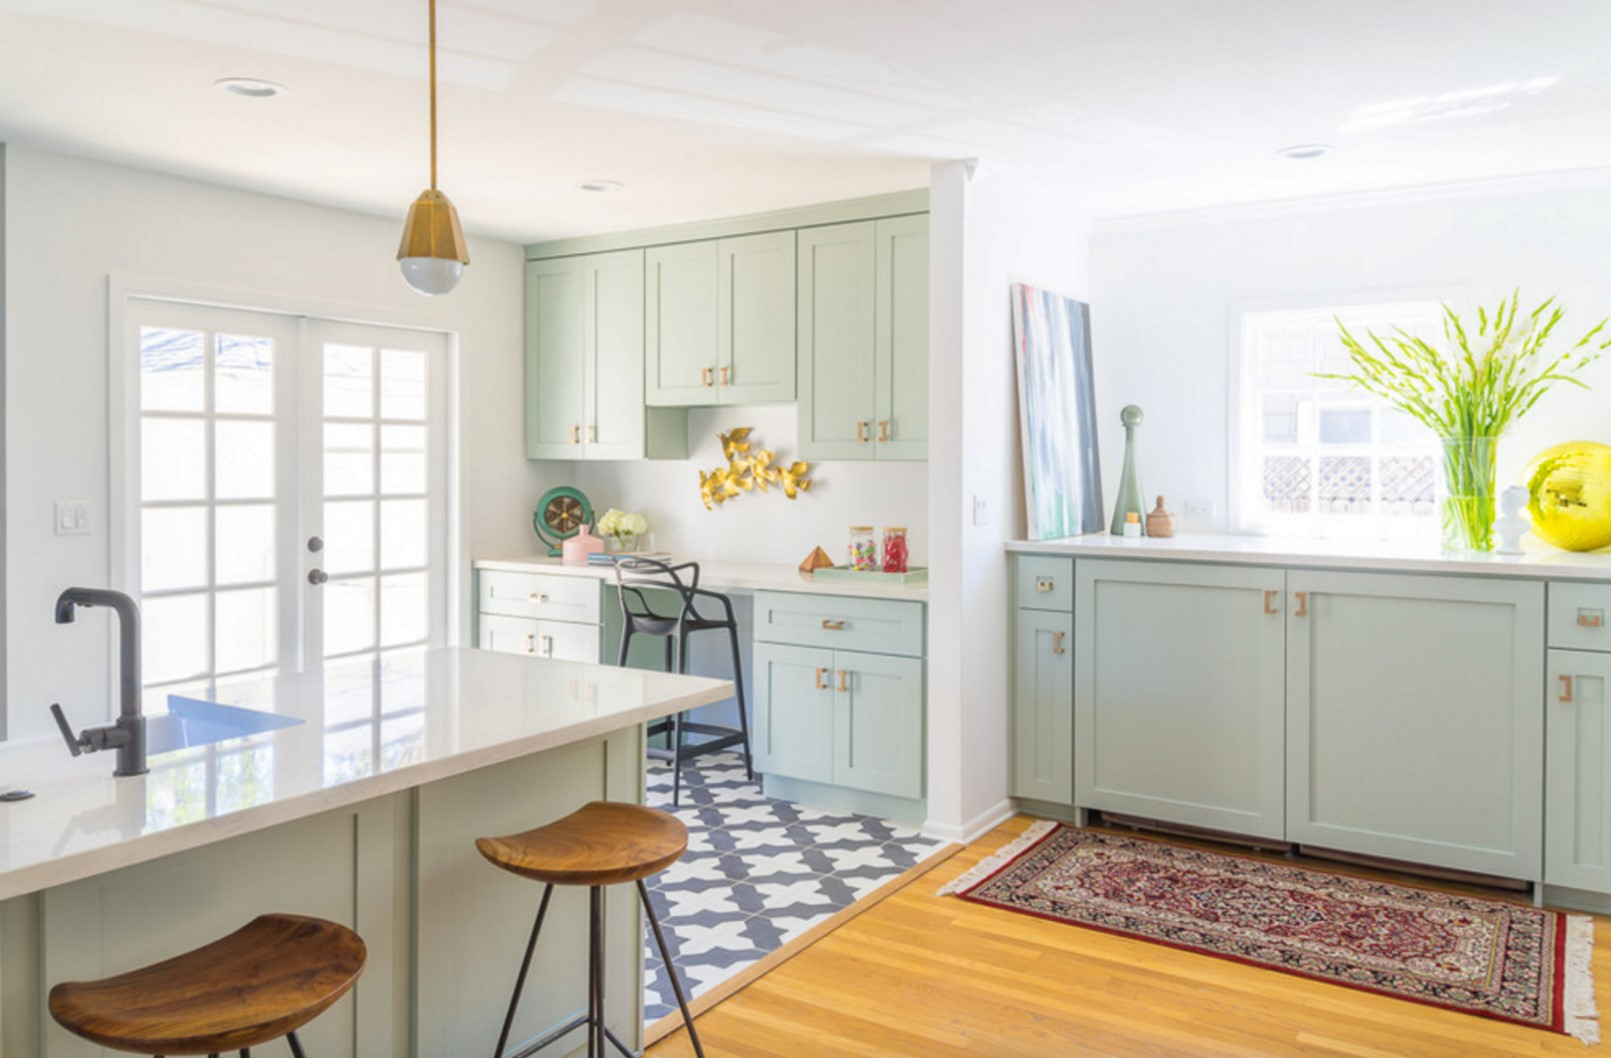 Thereu0027s Something About Our Badajoz Cement Tile Used As Kitchen Floor Tile  That Always Makes Us Sit Up And Take Notice. Like This Kitchen From  Apartment ...